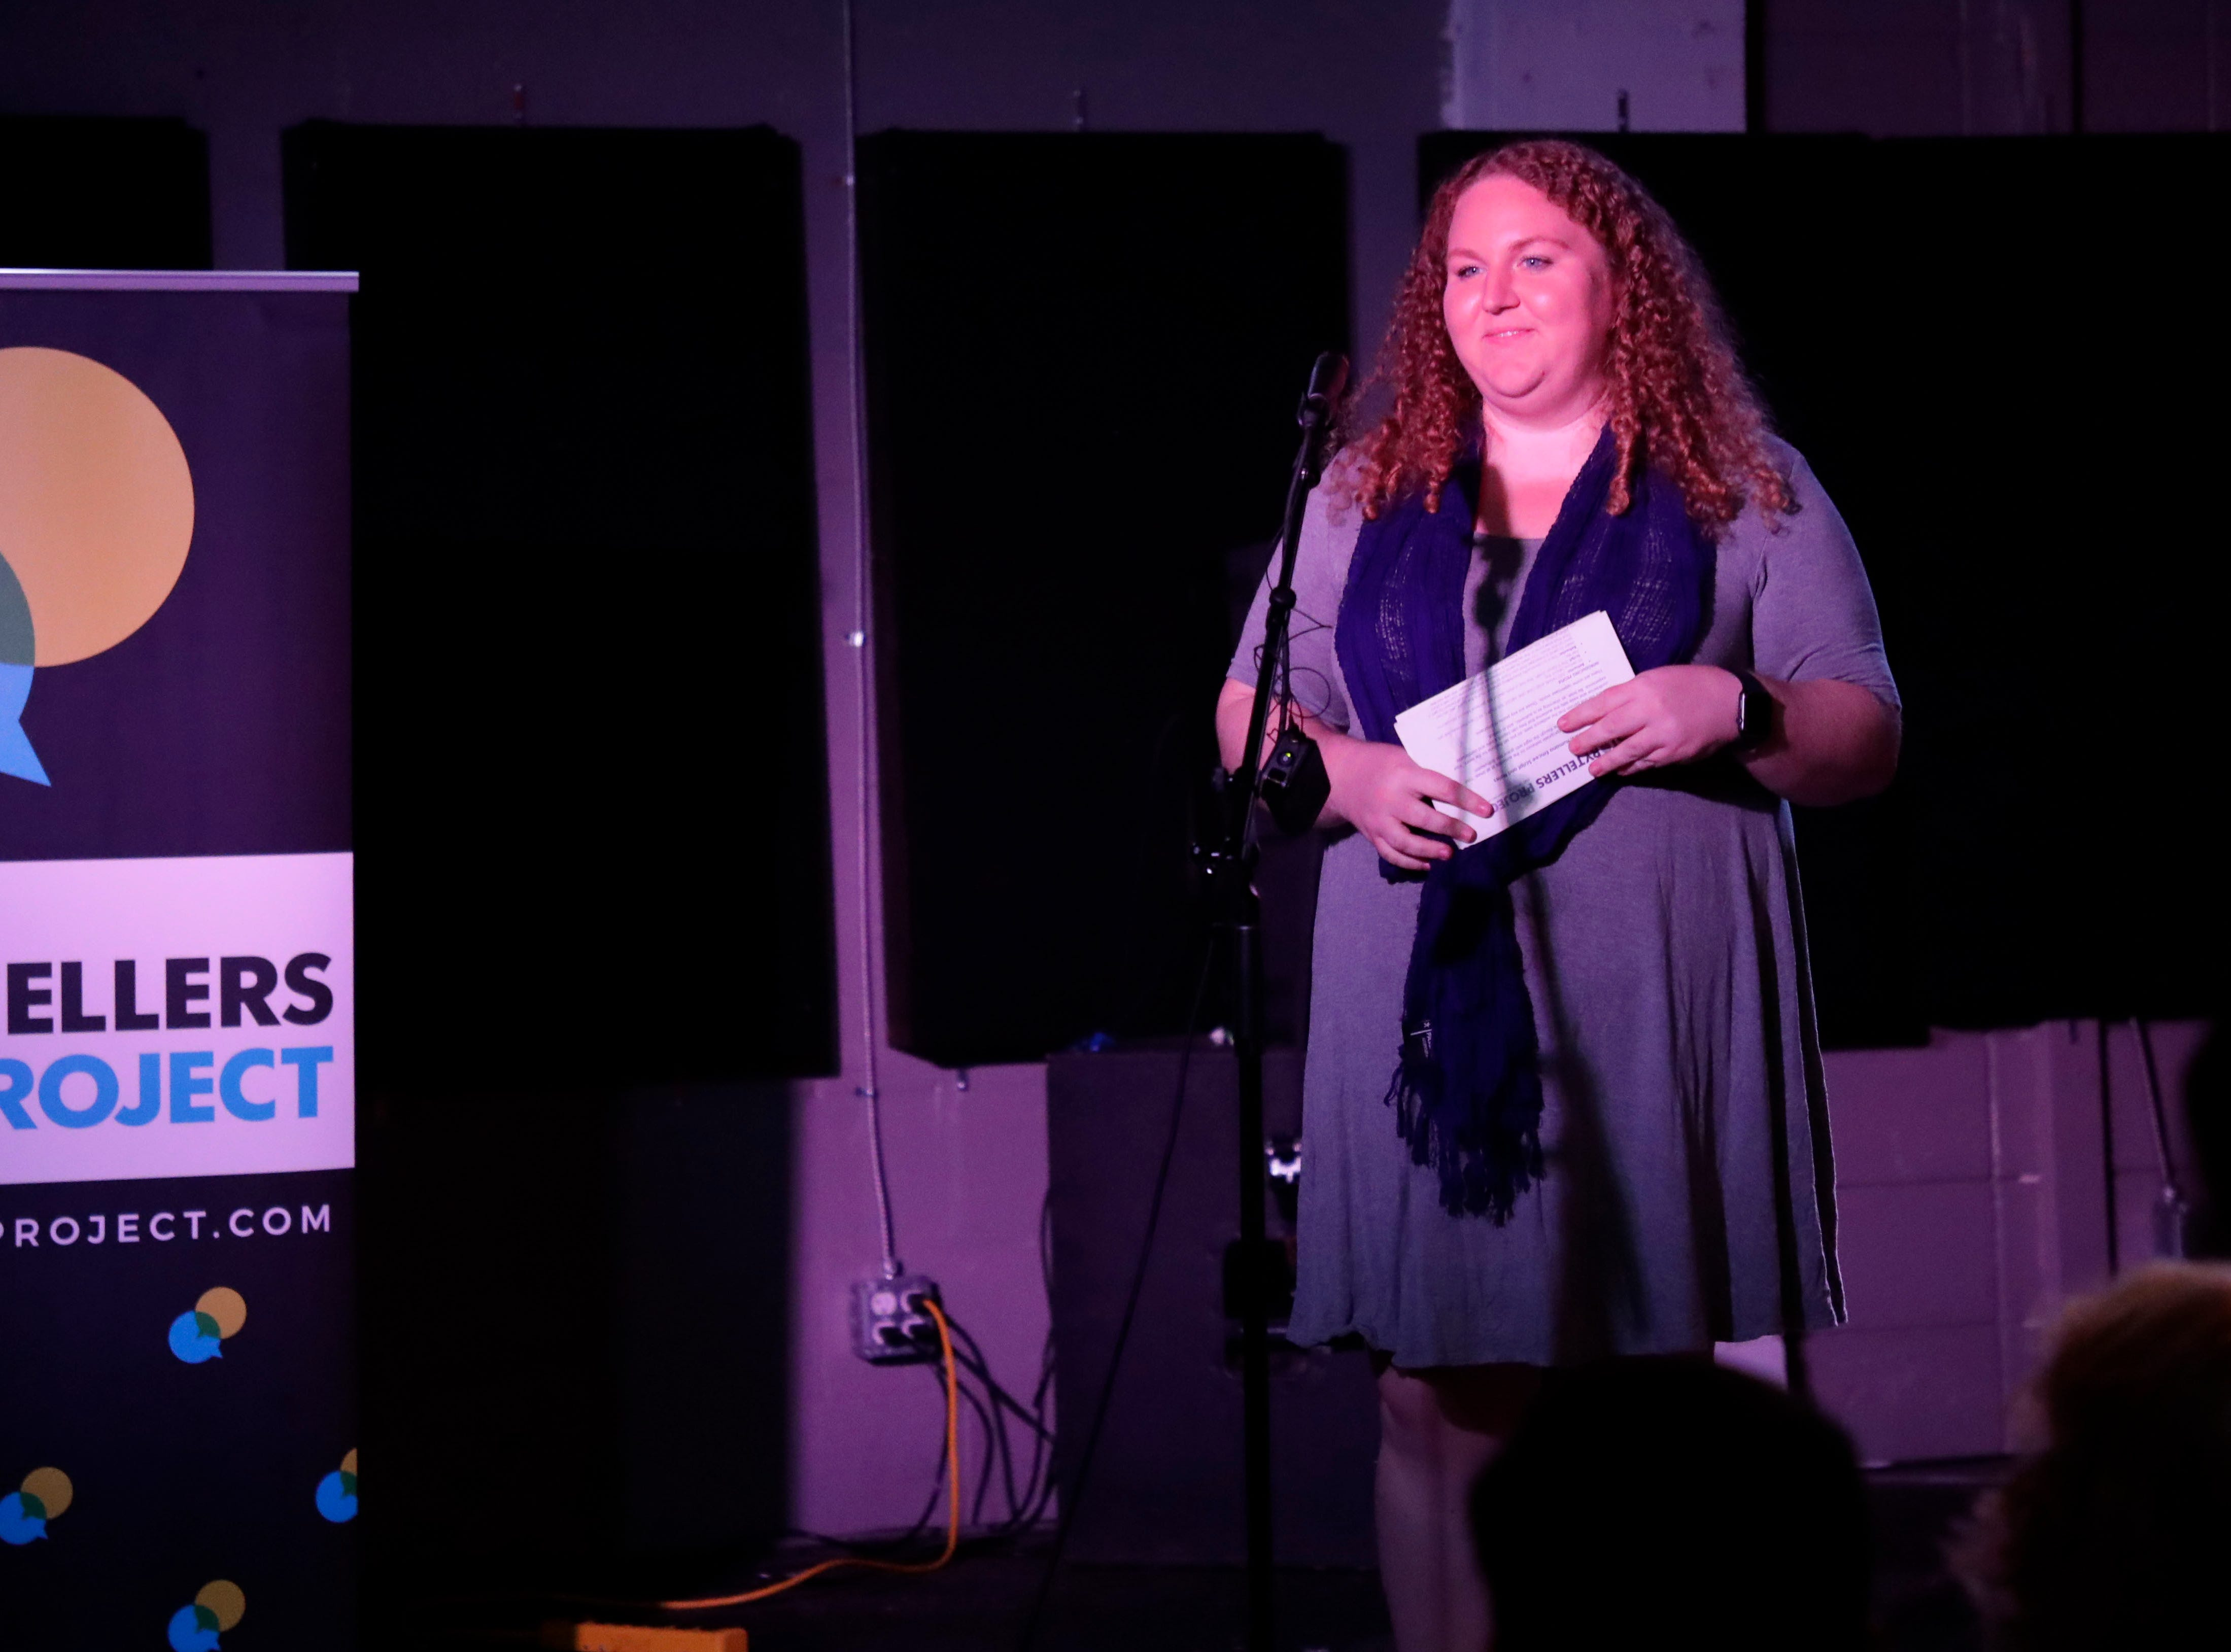 Ashley White, K-12 reporter for the Tallahassee Democrat, gives an introduction of what to expect at Story Tellers, Tuesday Feb. 12, 2019.